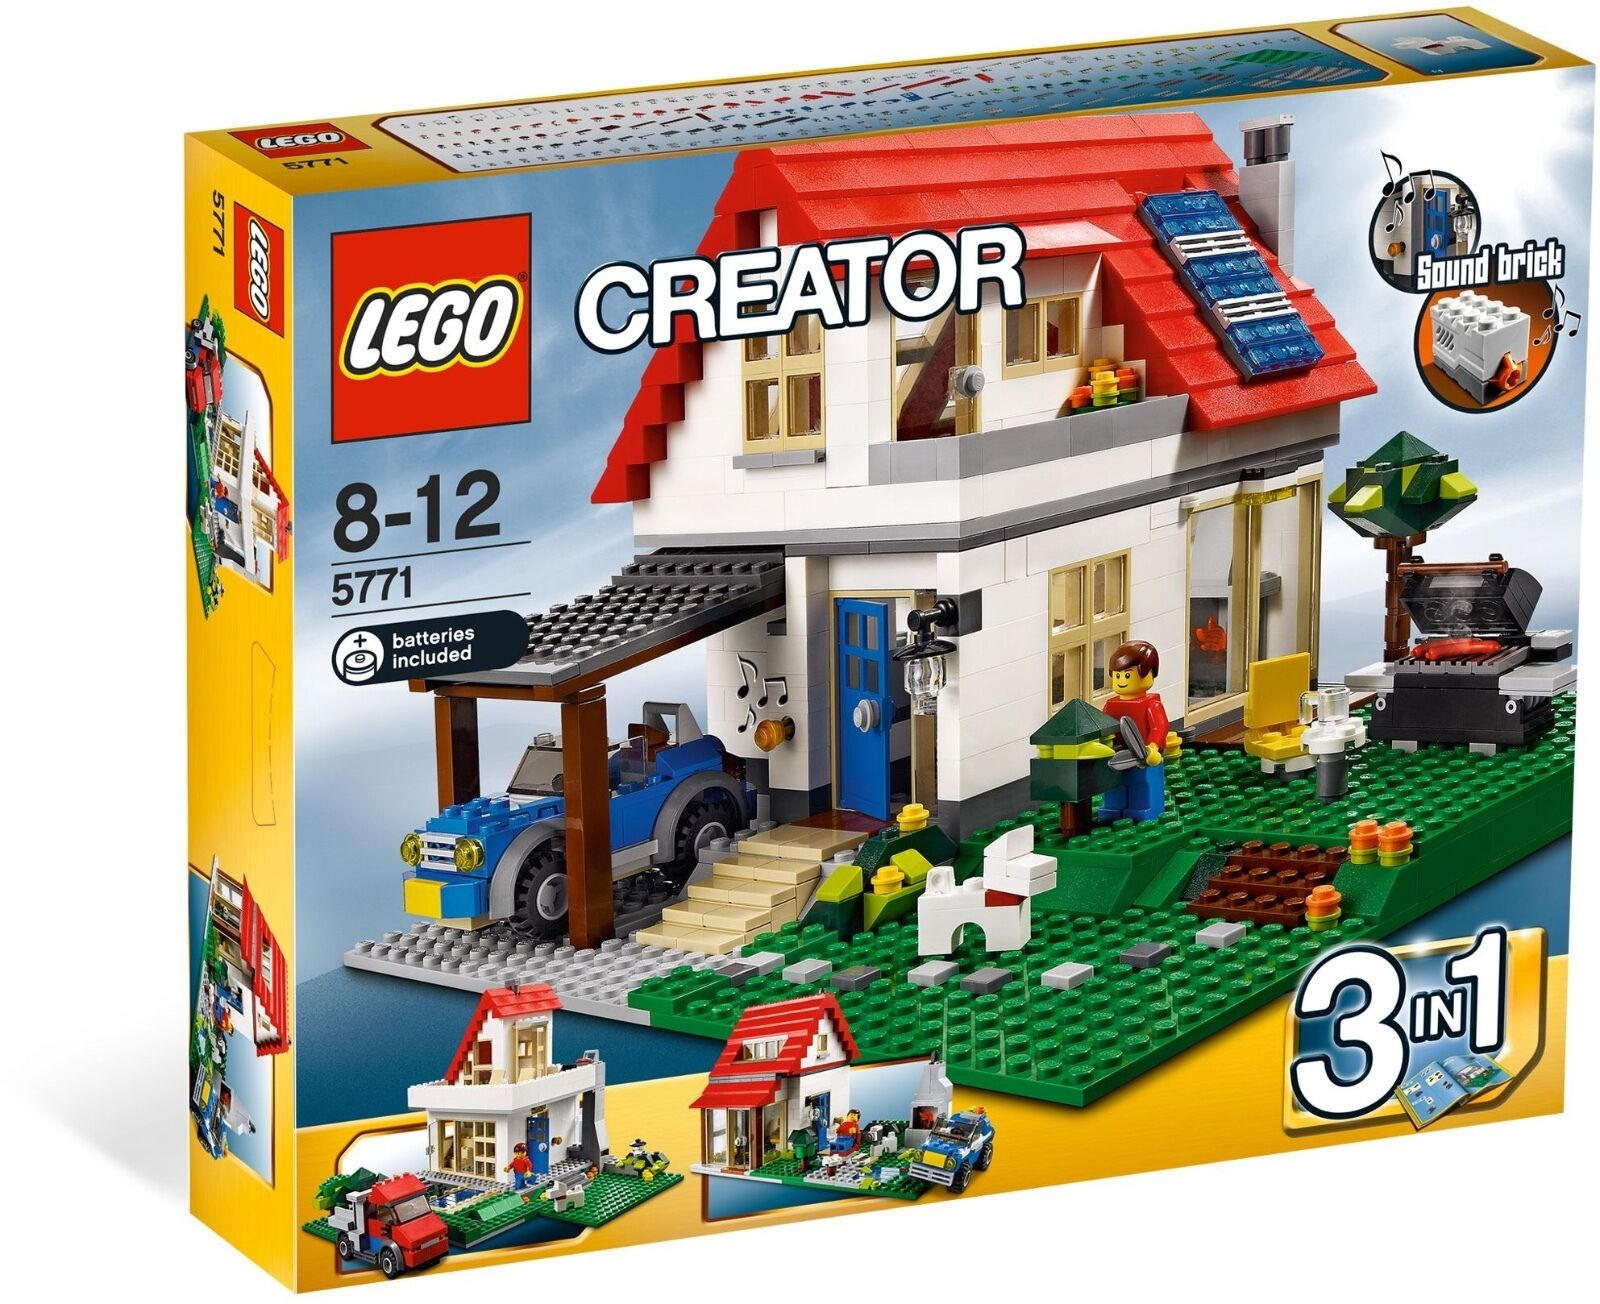 *BRAND NEW* Lego Creator HILLSIDE HOUSE 5771